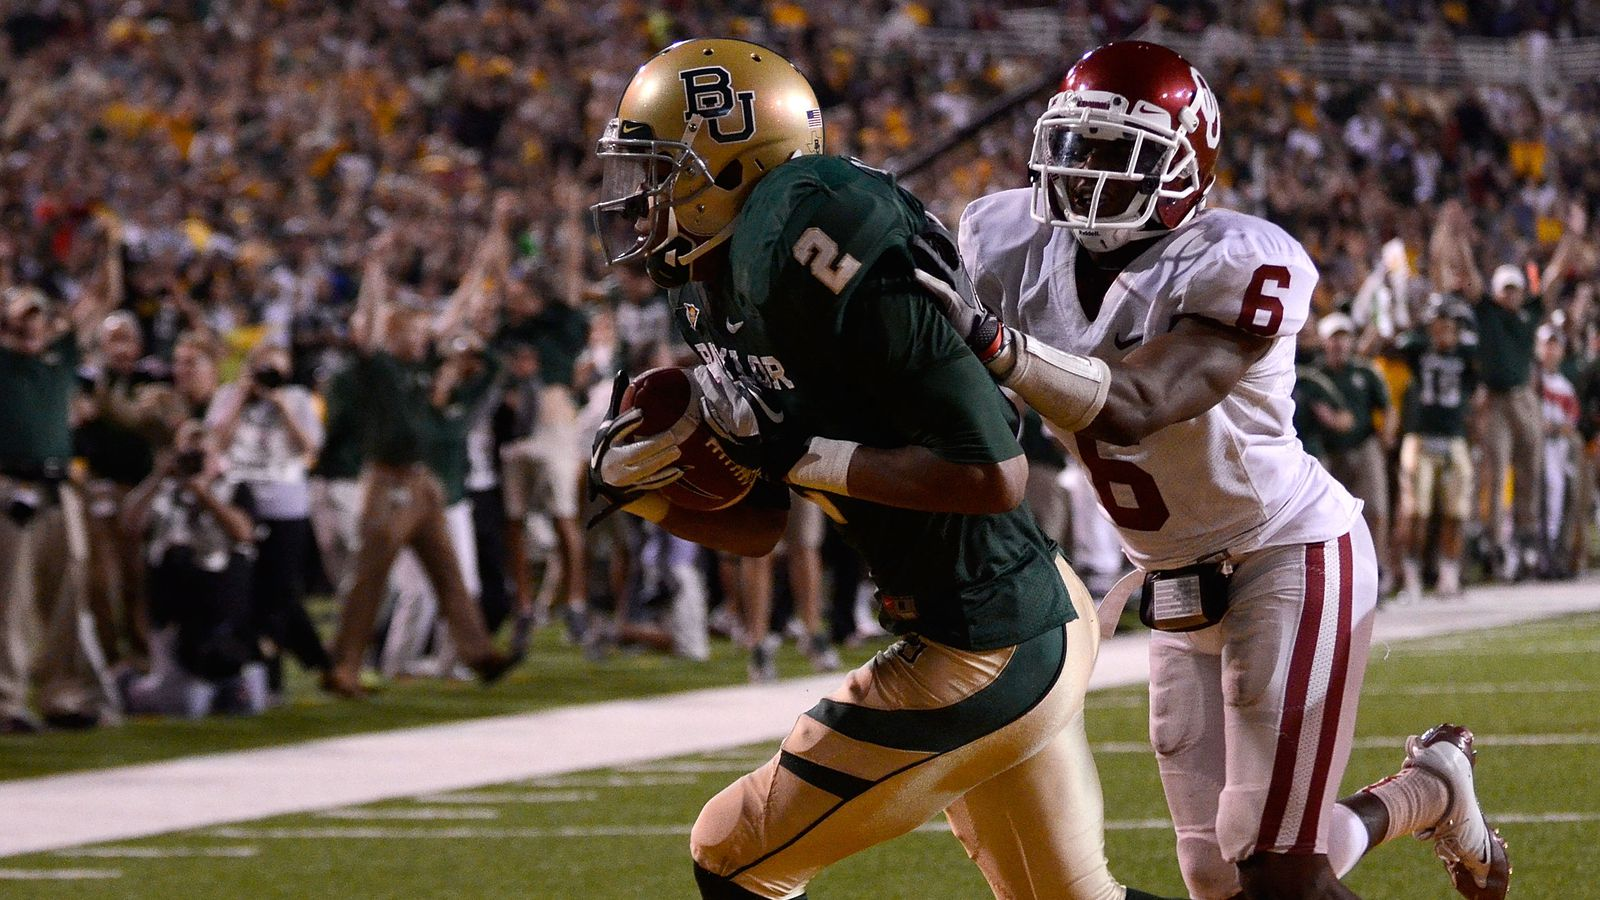 This Day in Baylor Football History: Baylor 45, Oklahoma 38 - Our Daily Bears